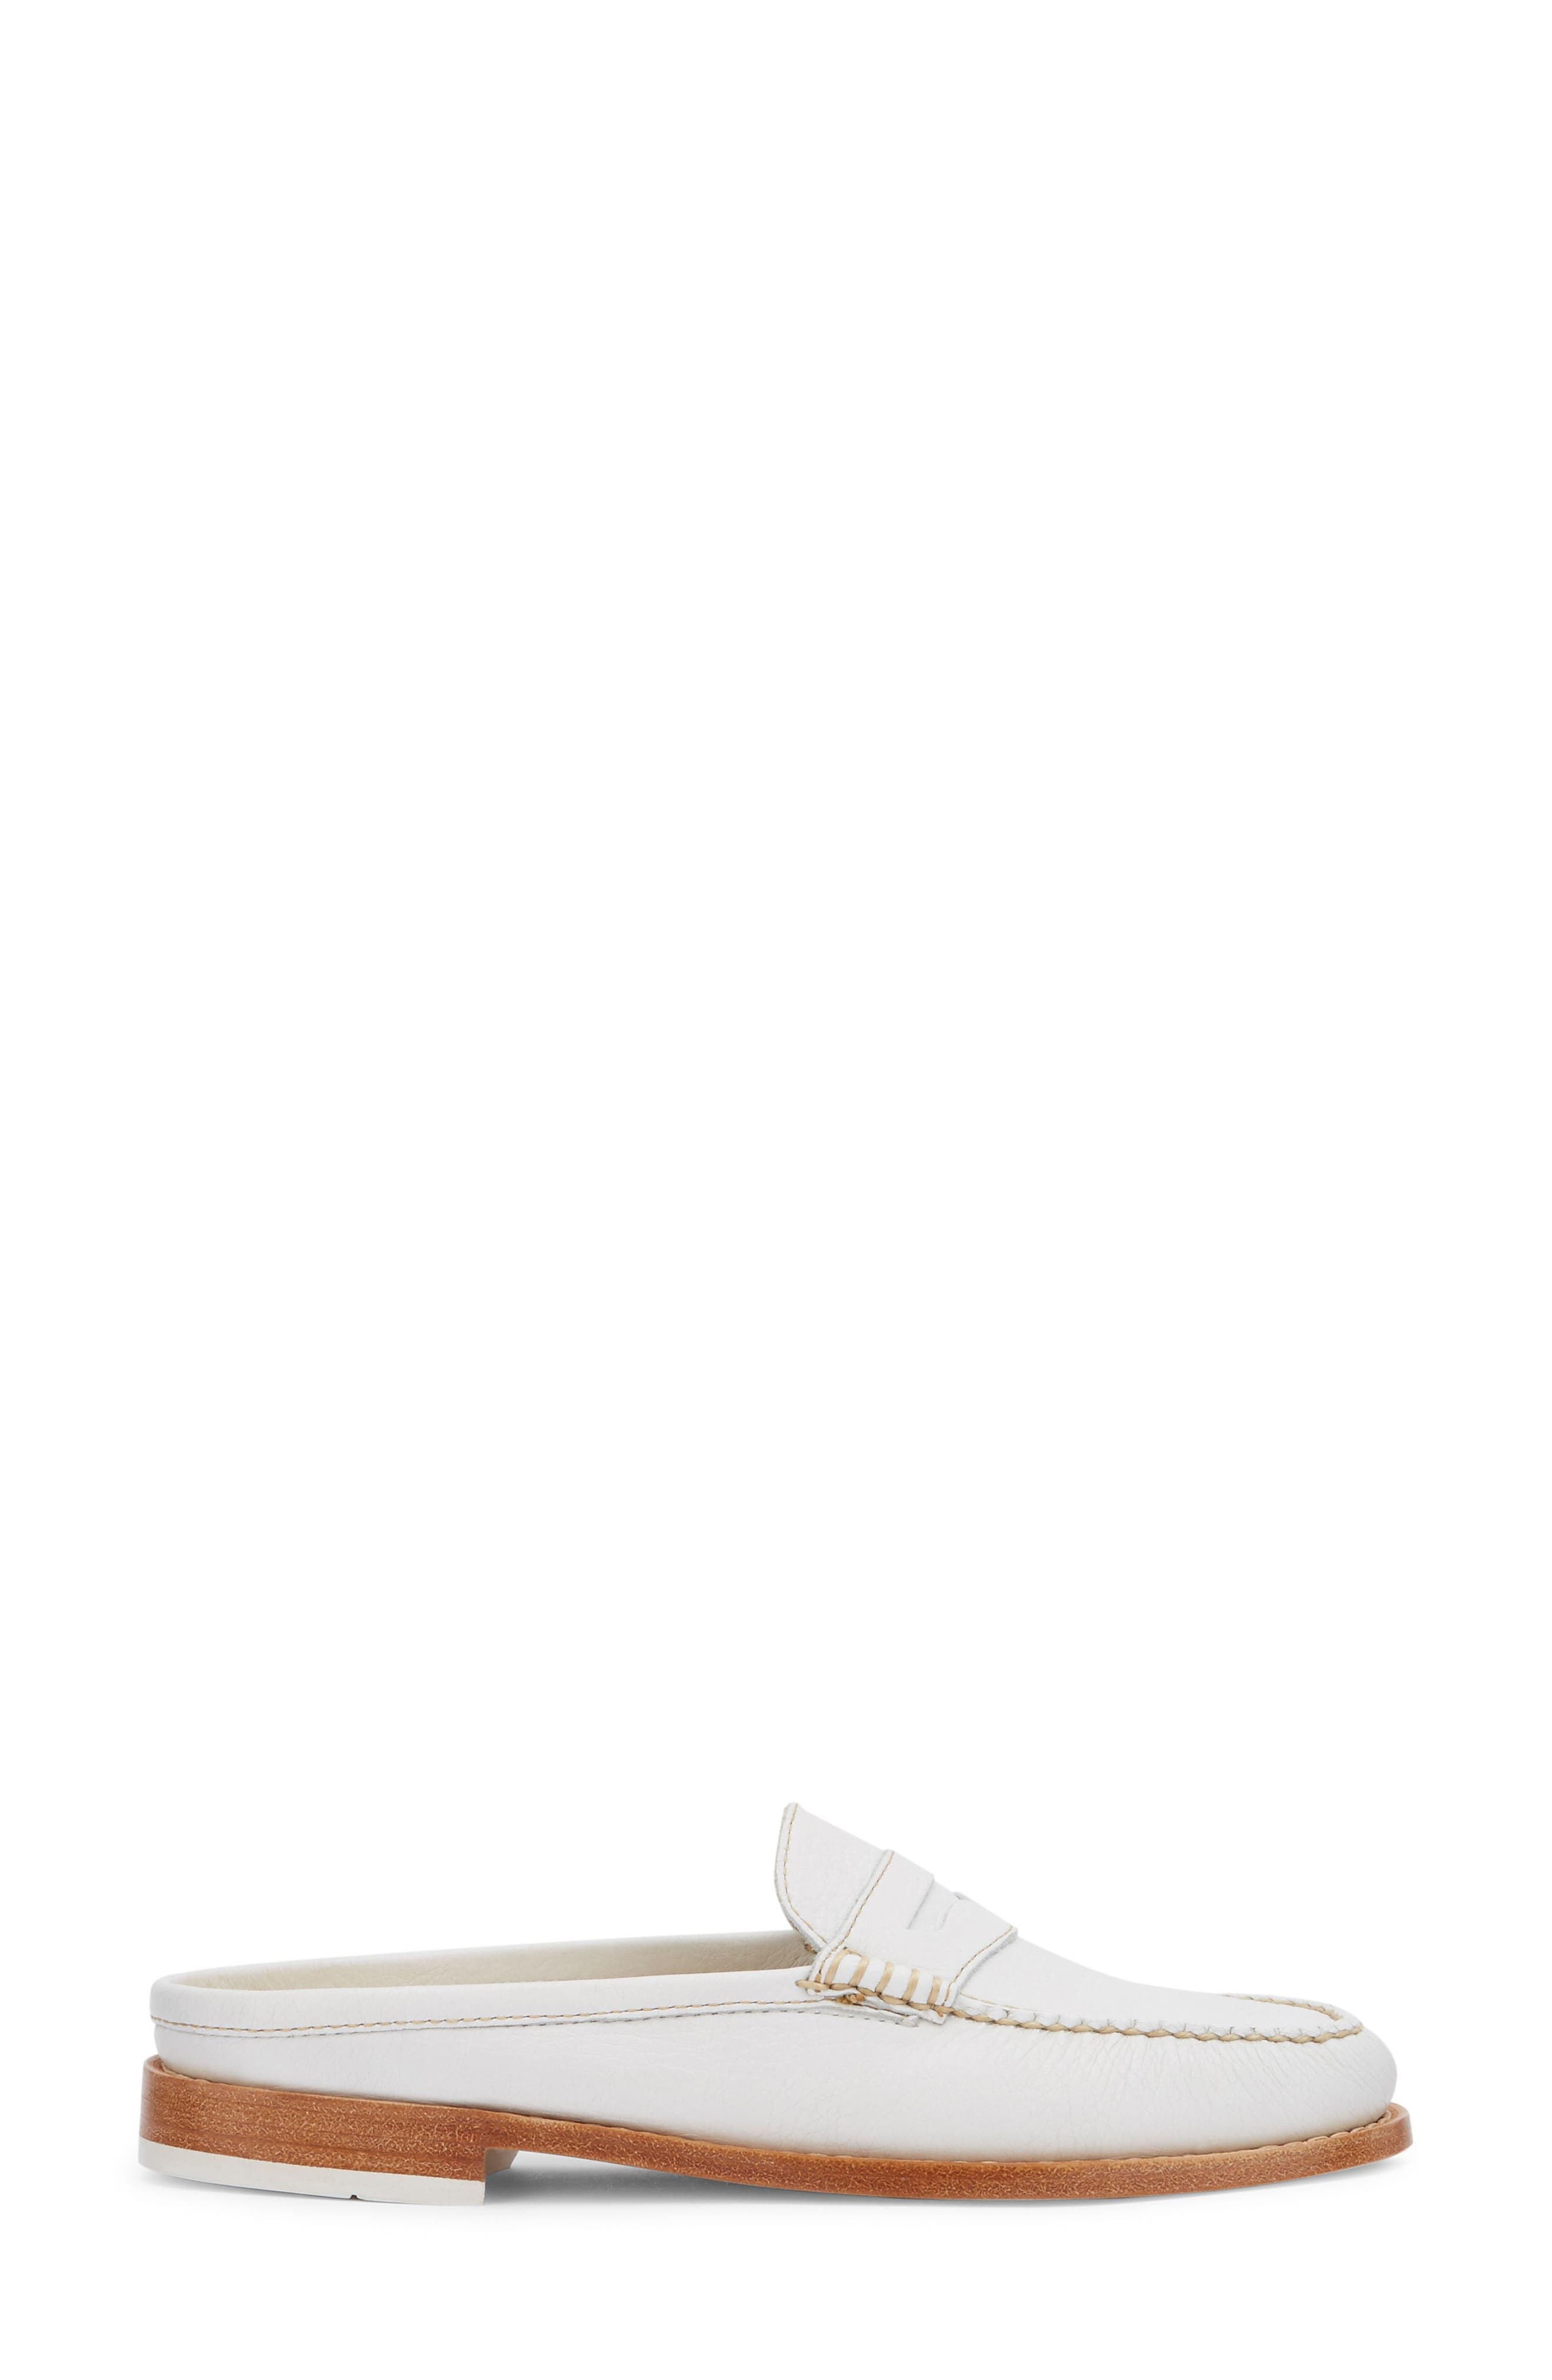 Wynn Loafer Mule,                             Alternate thumbnail 3, color,                             WHITE/ WHITE LEATHER